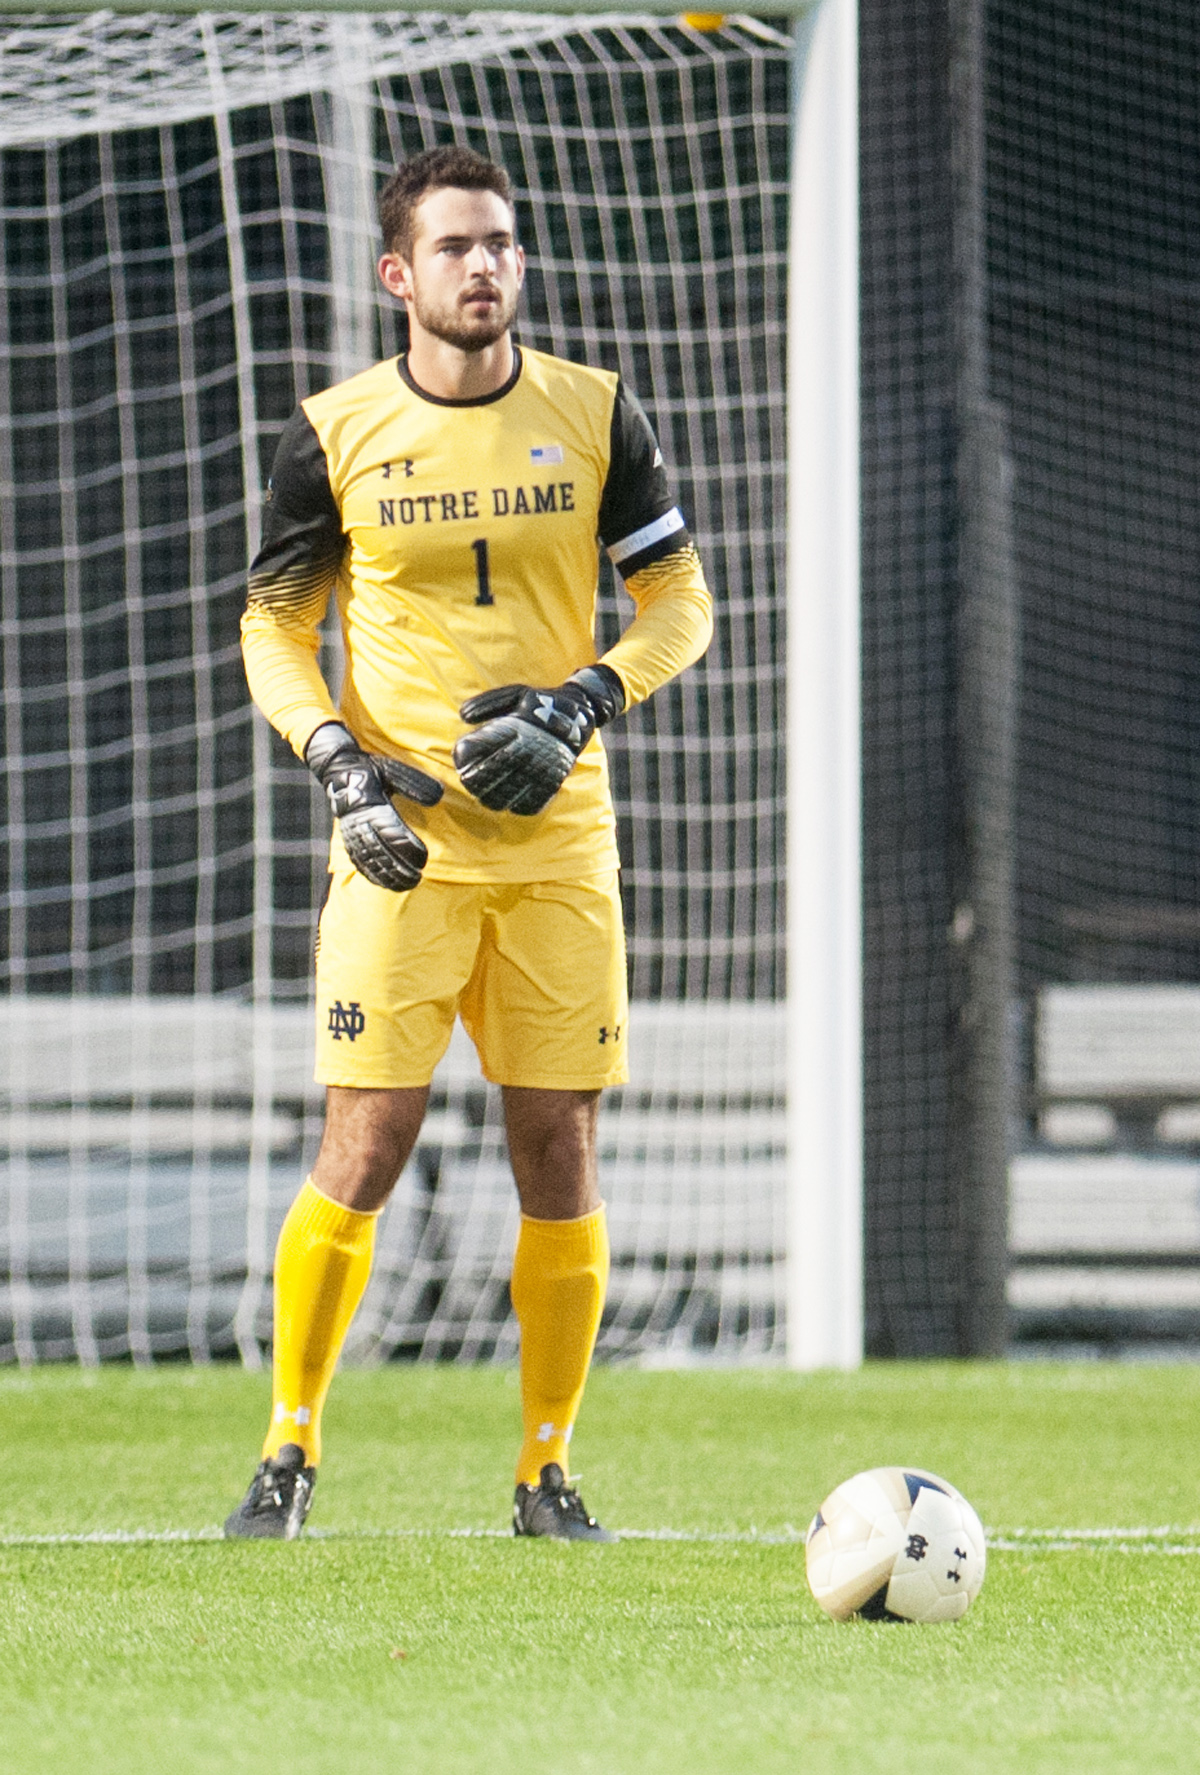 Irish graduate student goalie Chris Hubbard readies to clear the ball during Notre Dame's 2-1 overtime win over Northwestern on Tuesday at Alumni Stadium.